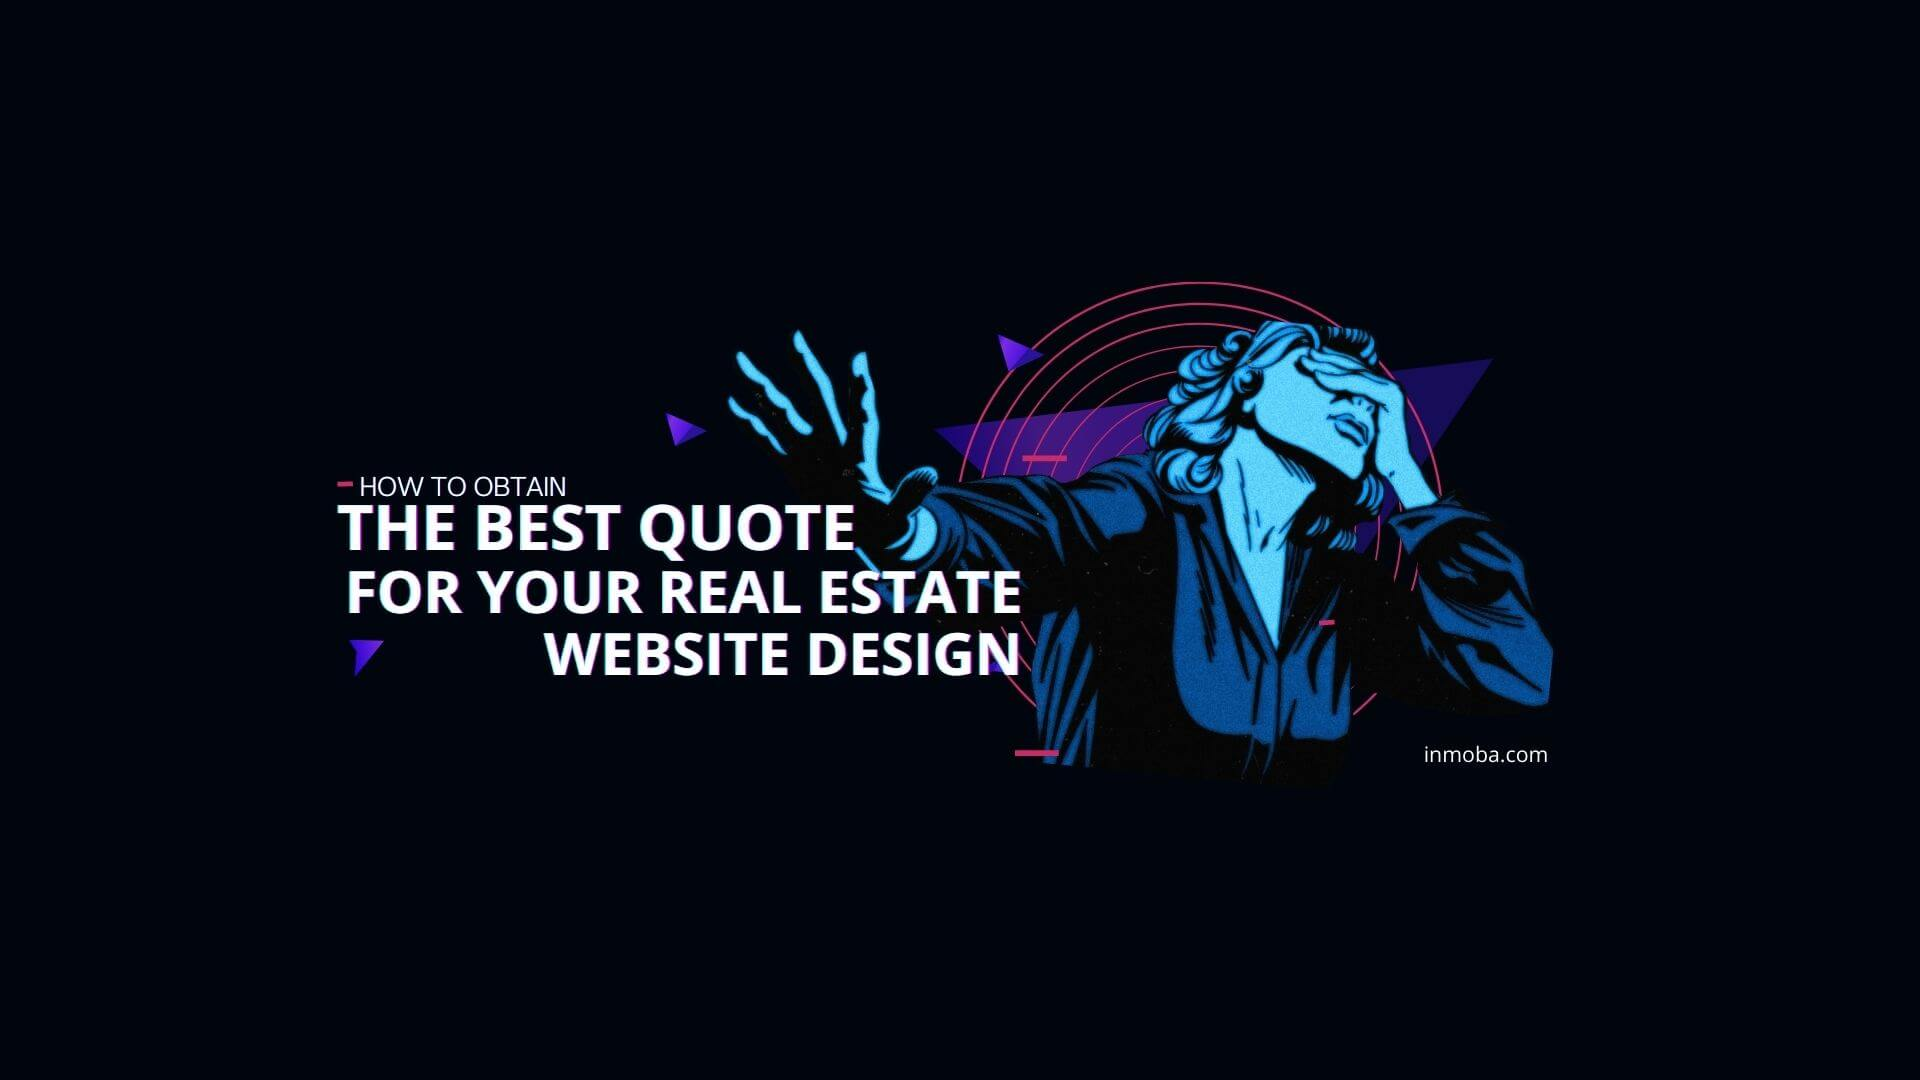 How to get the best quote for you real estate website